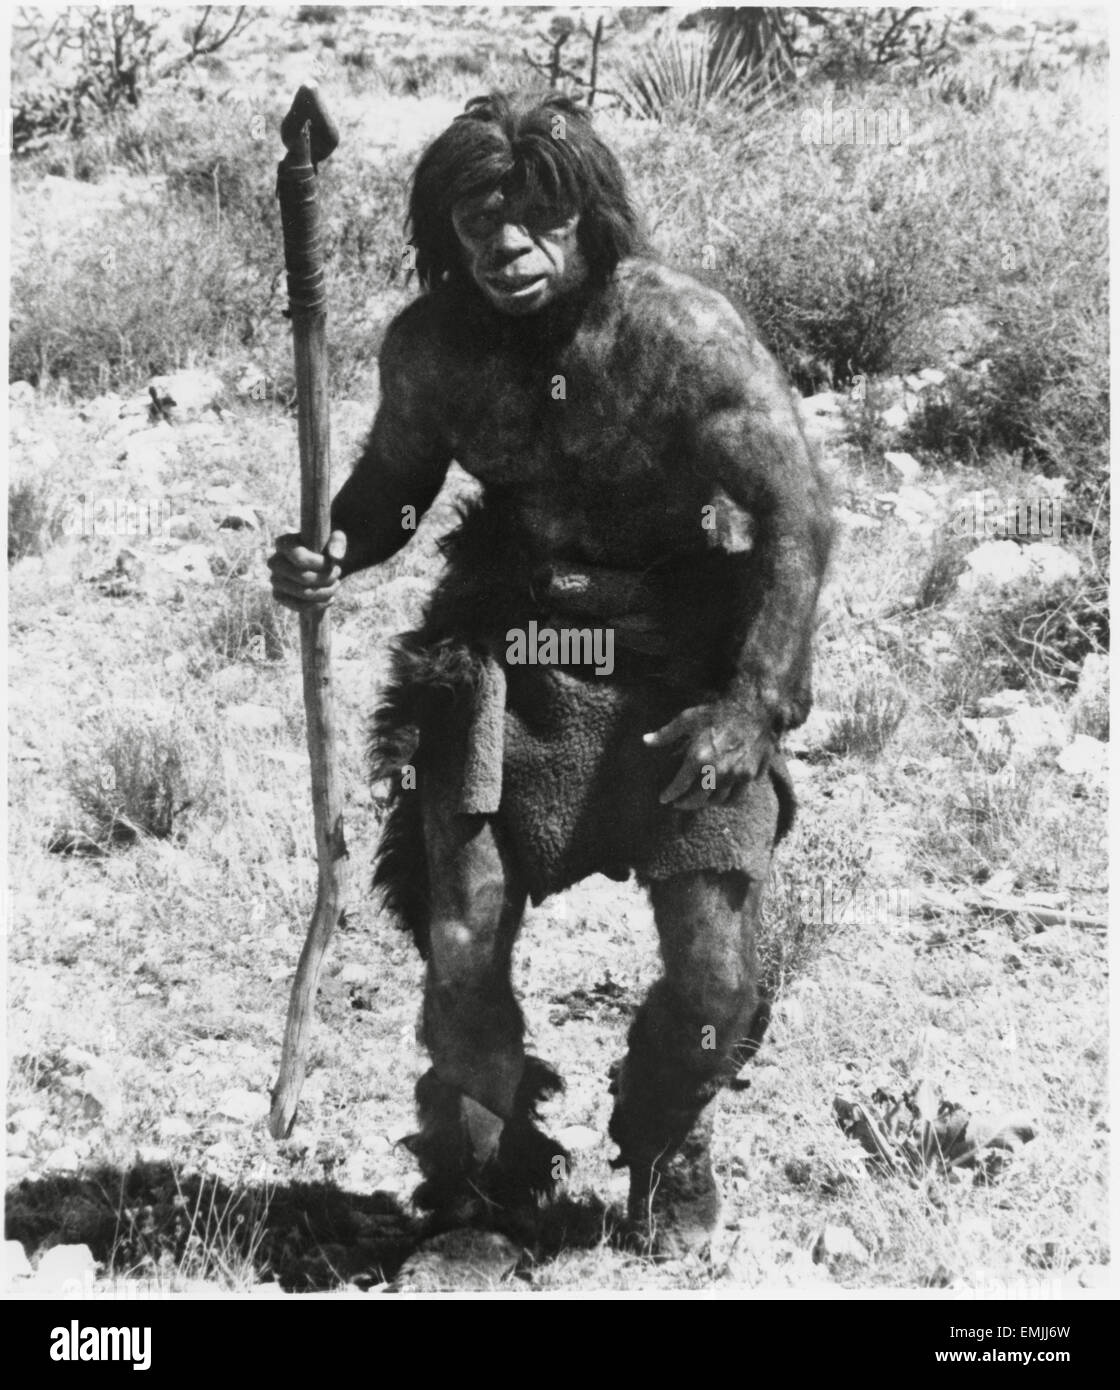 """Caveman, Publicity Portrait, on-set of  the Documentary Film """"Up From the Ape"""" (aka The Animal Within), 1975 - Stock Image"""